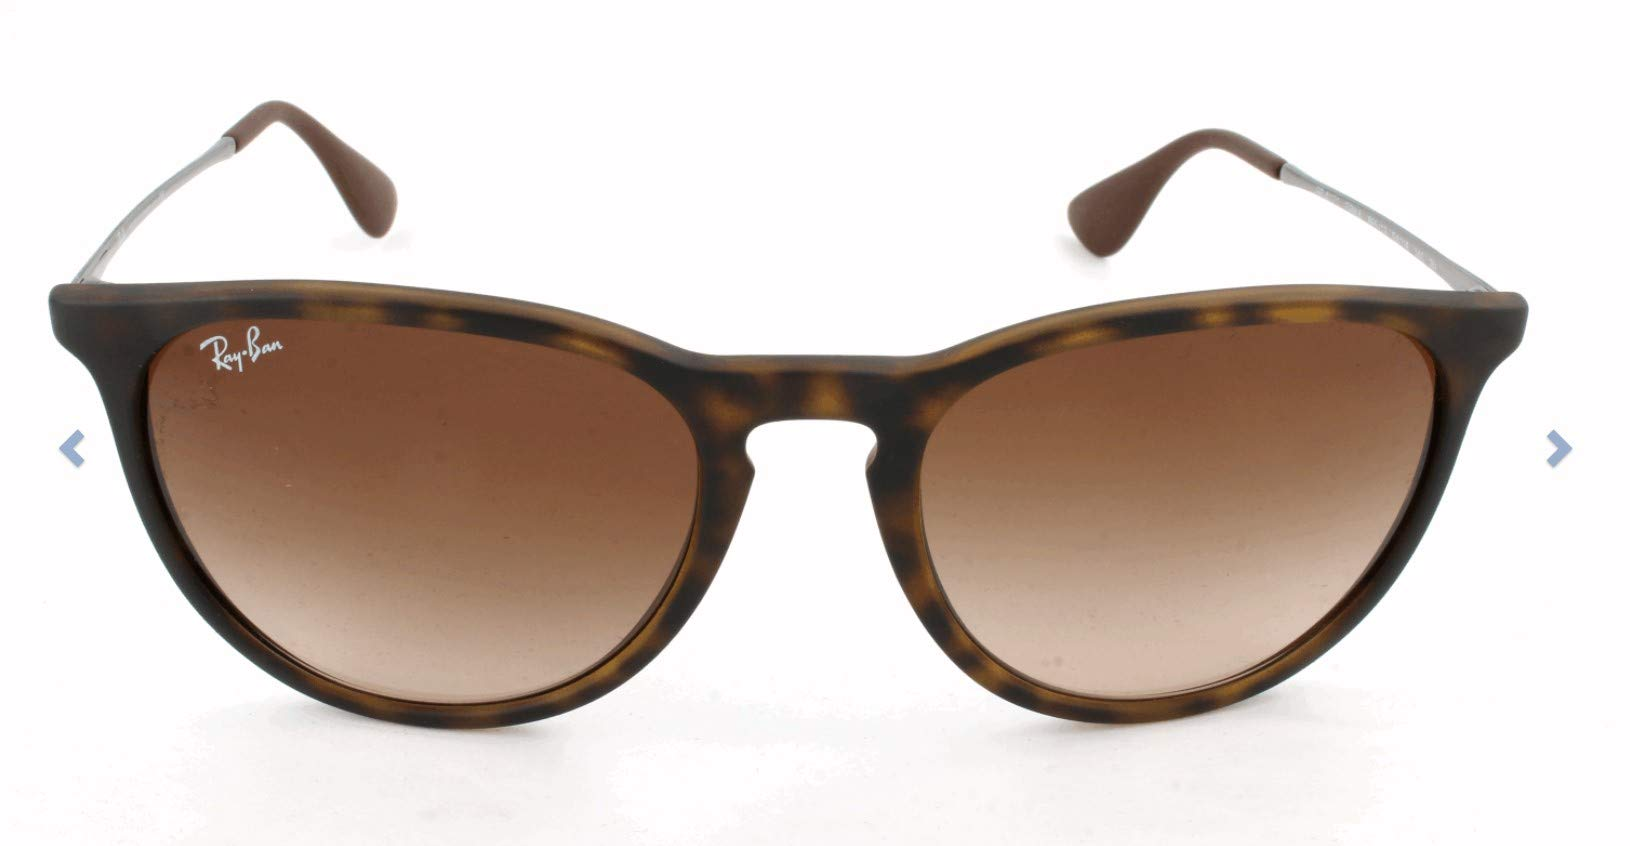 Ray-Ban RB4171 Erika Round Sunglasses, Dark Rubber Tortoise/Brown Gradient, 54 mm by Ray-Ban